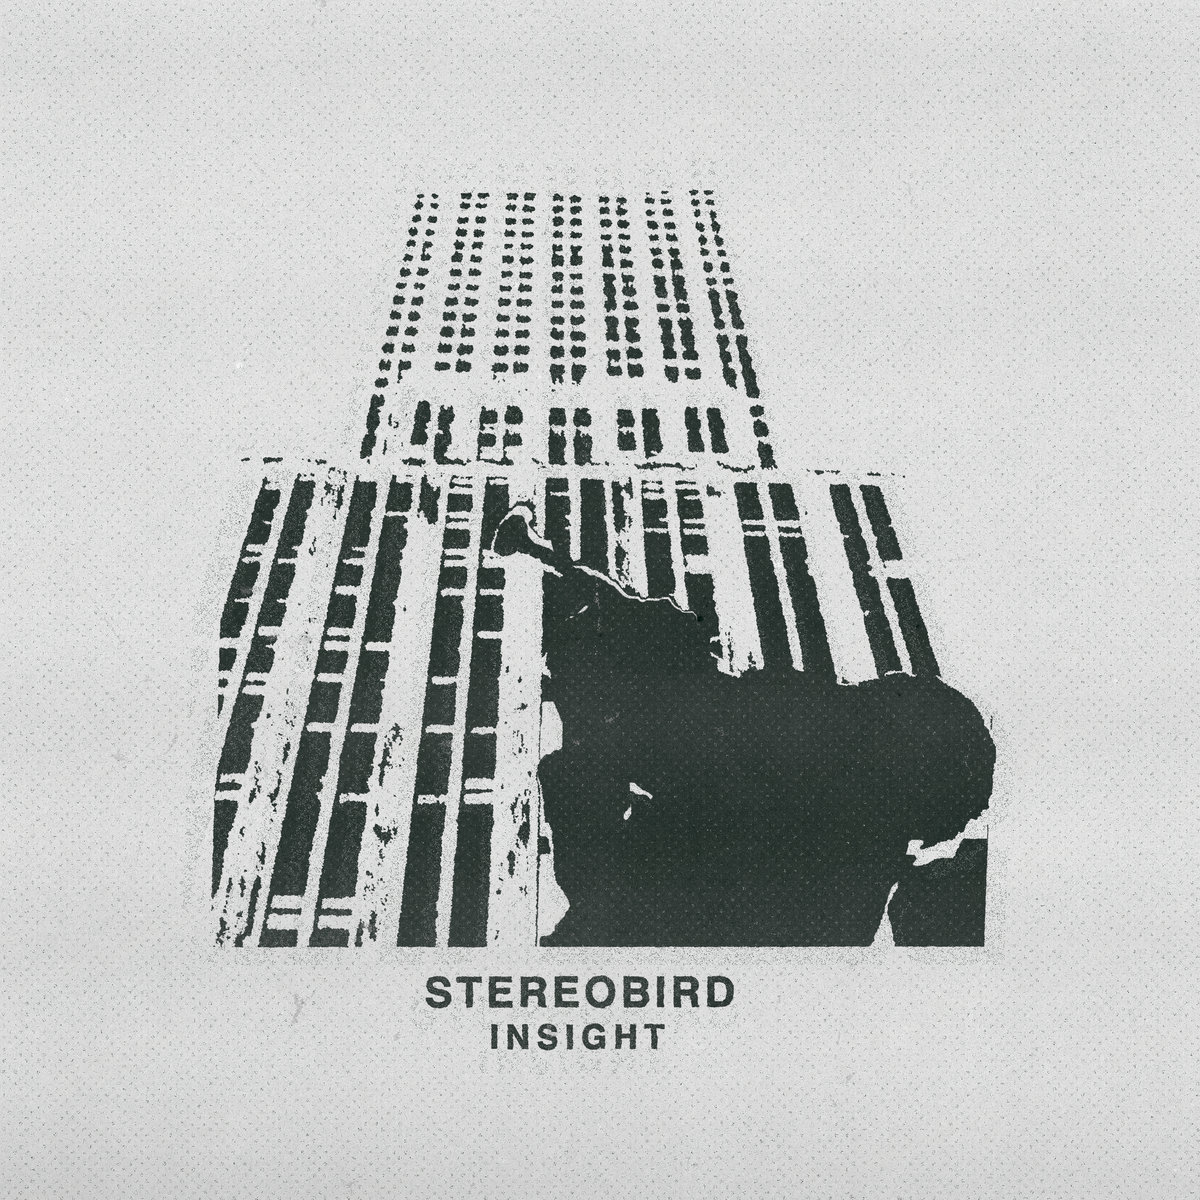 Post-punk shivers – Stereobird – Insight (Joy Division cover)